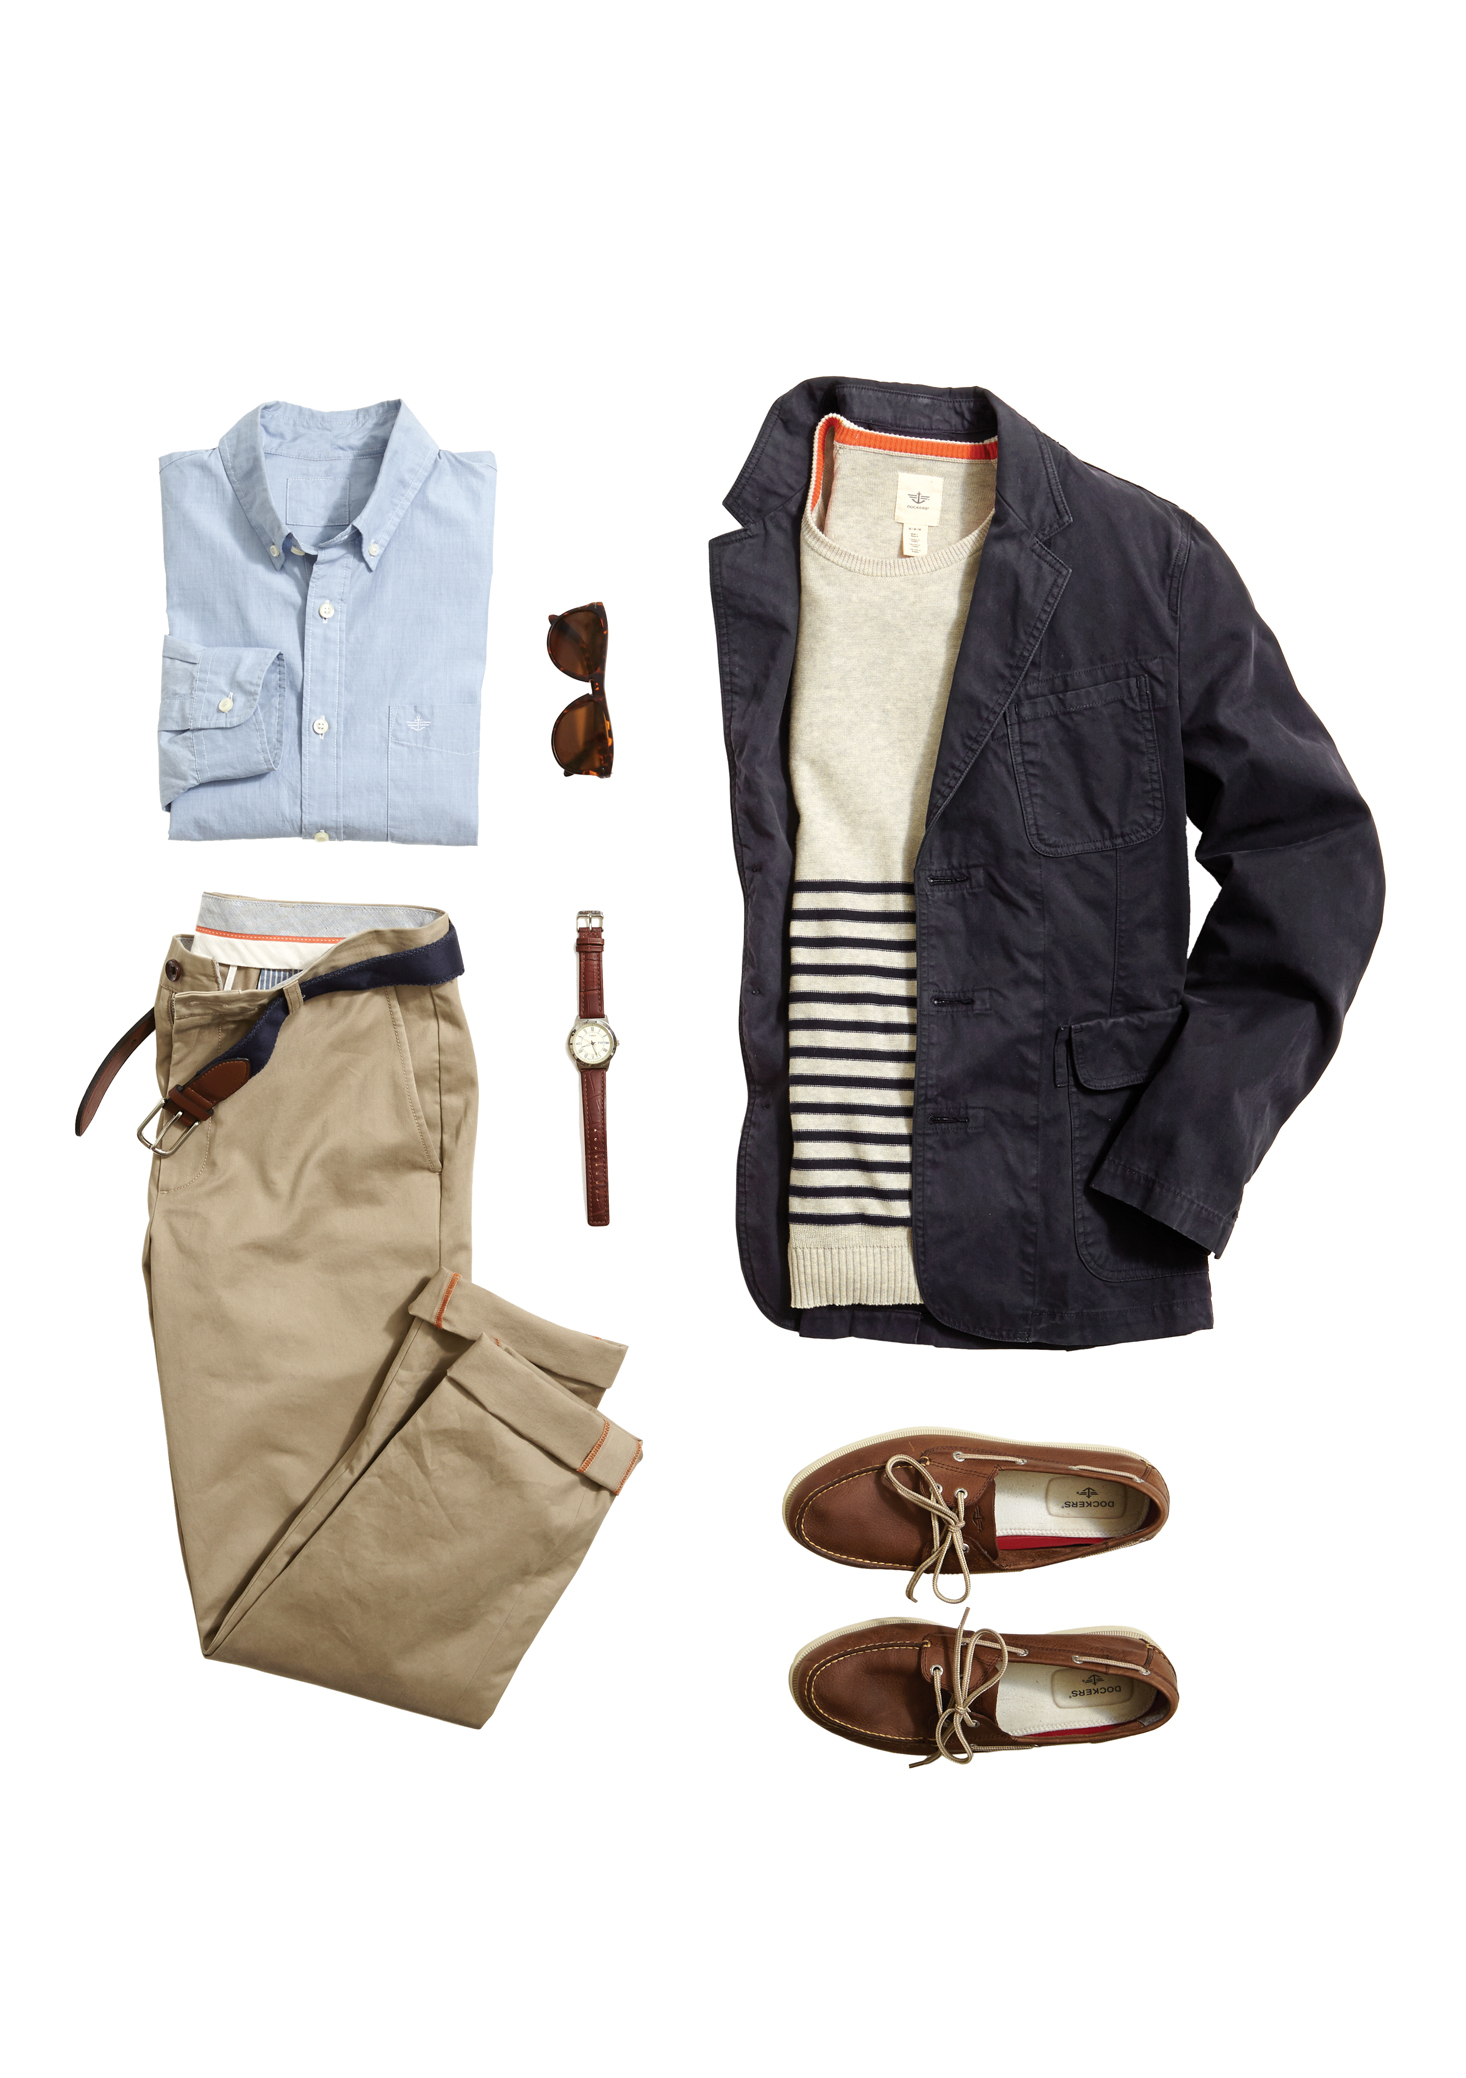 Dockers staples made for an effortless casual work wardrobe.